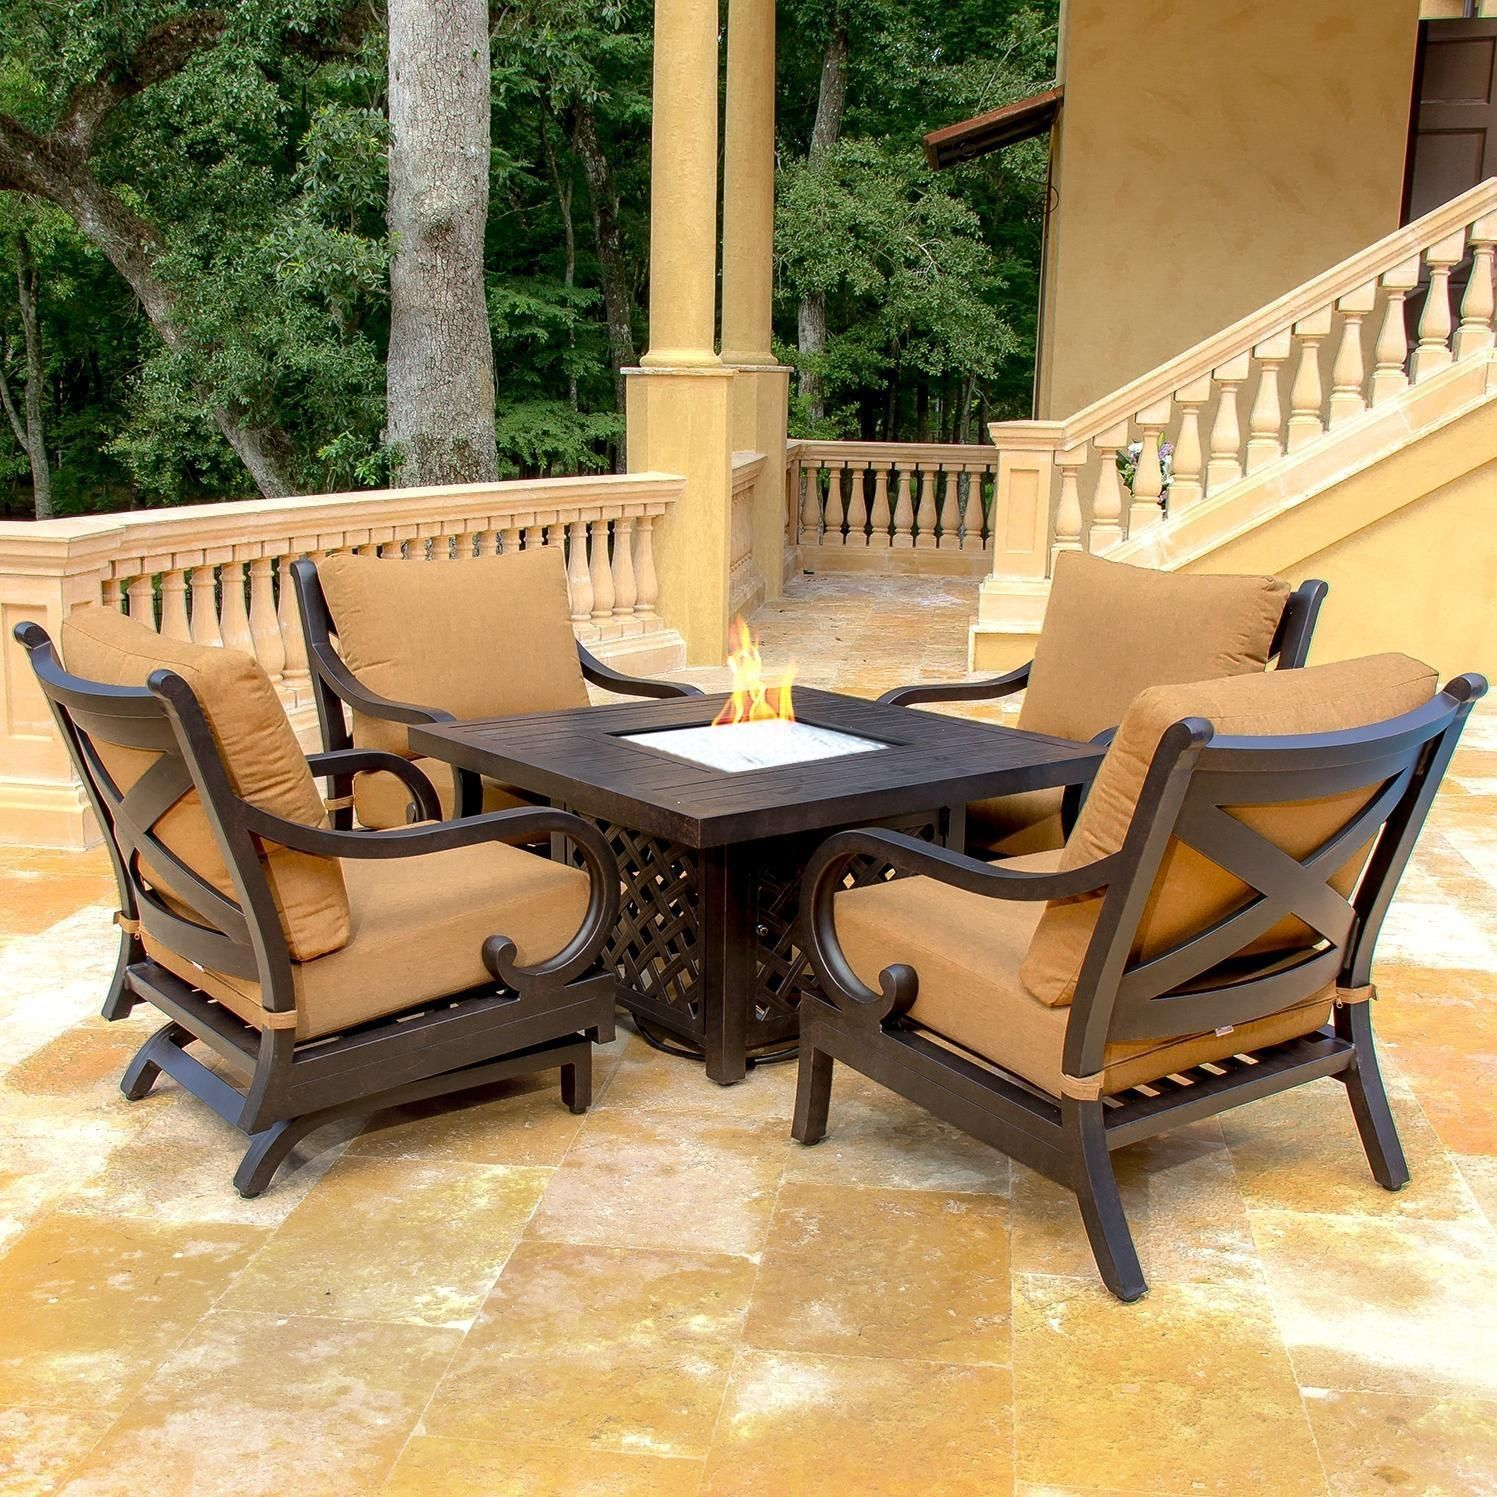 Deep Seating Patio Furniture With Fire Pit Fire pit